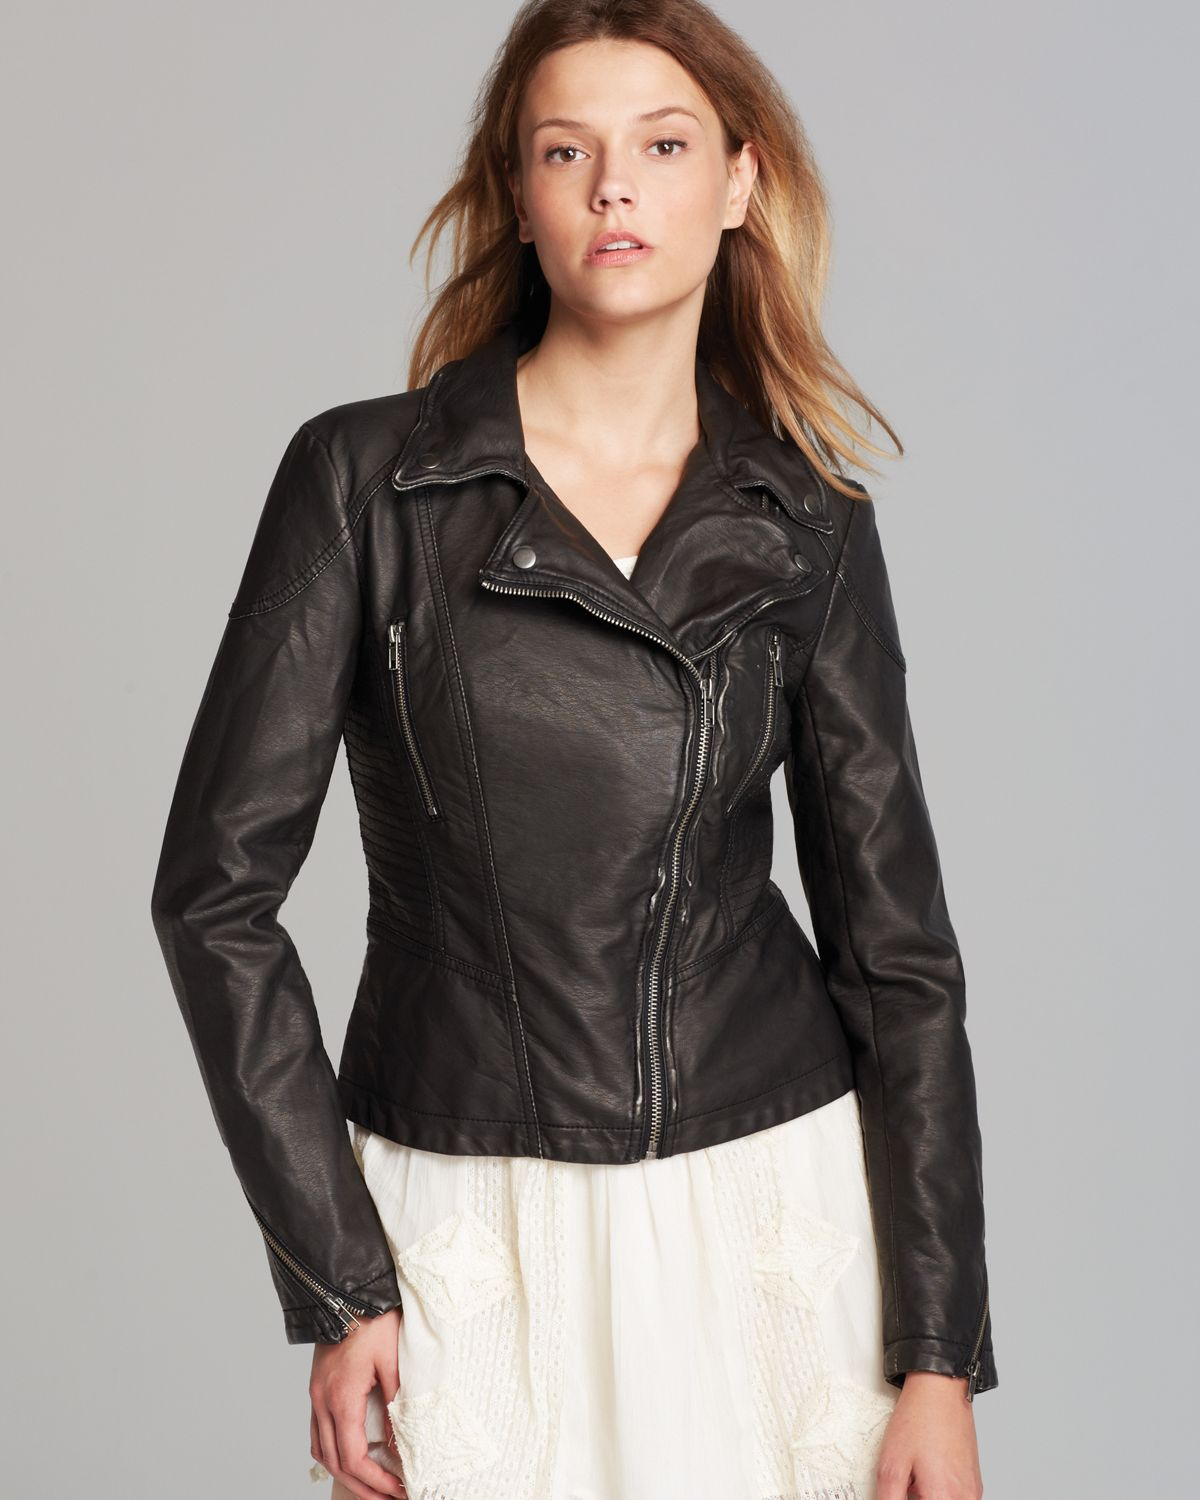 4334c651a8e92 Lyst - Free People Jacket - Distressed Faux Leather Peplum in Black